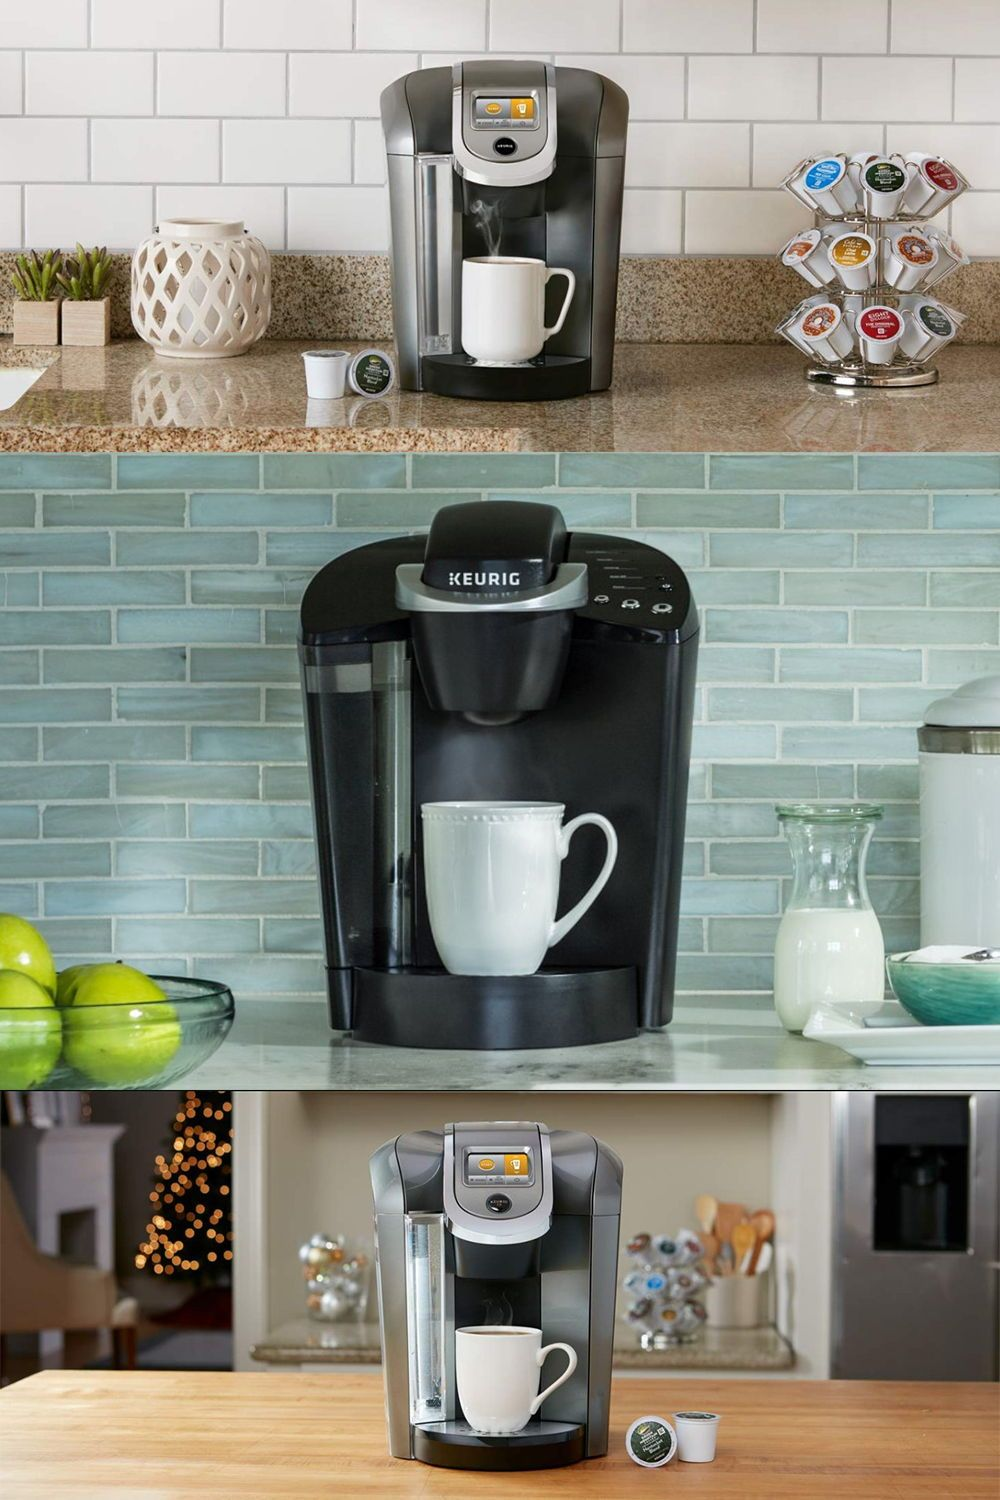 Top 10 Single Cup Coffee Makers June 2020 Reviews Buyers